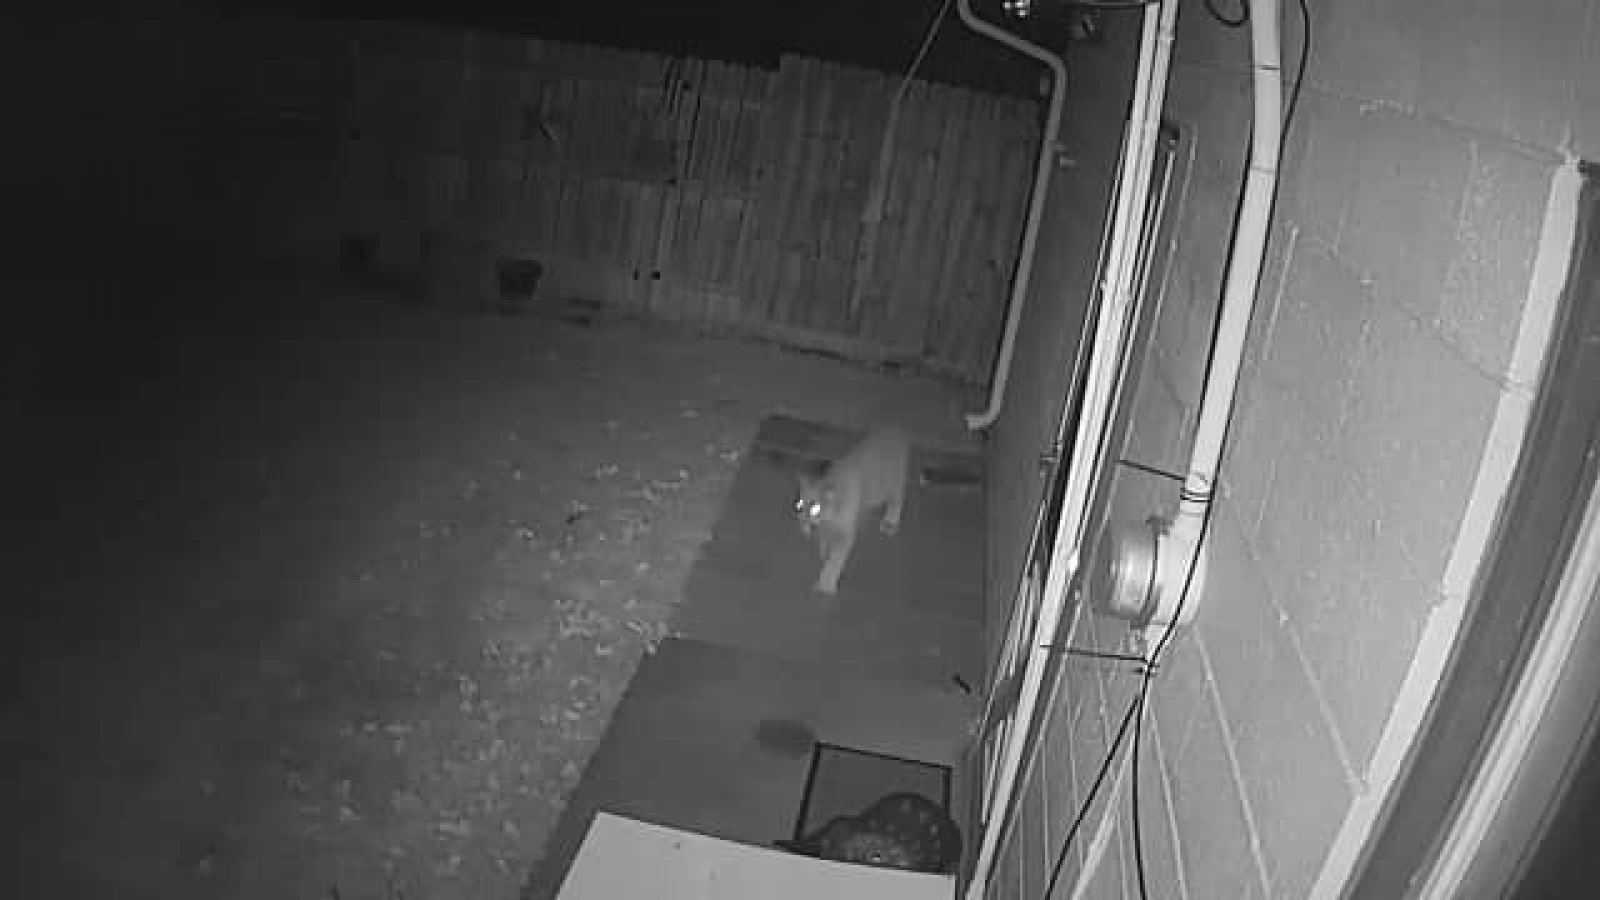 lion trapped in a net mountain lion caught on security camera at gordon a net in trapped lion